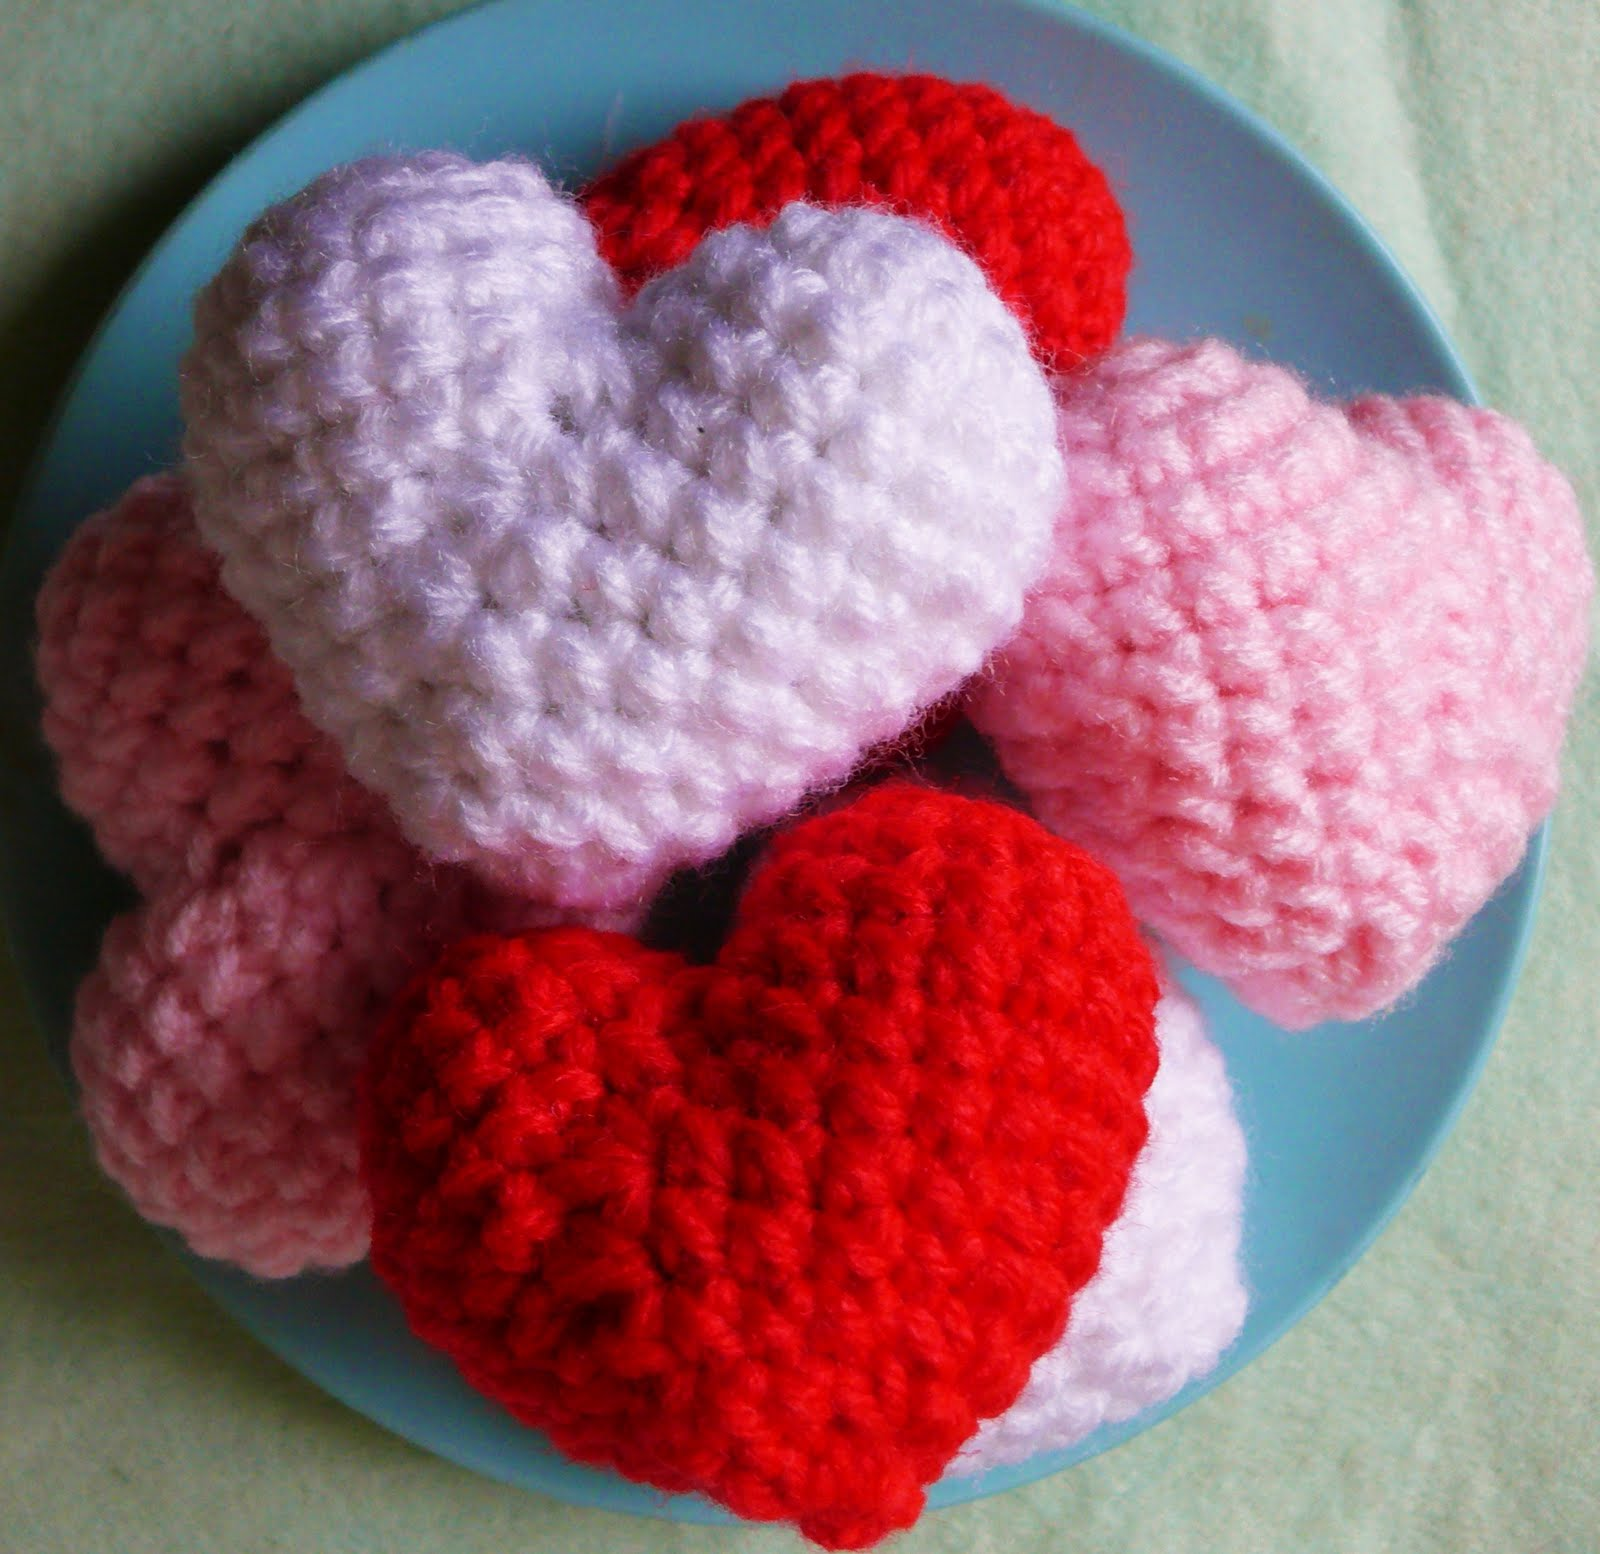 Amigurumi Heart : 2000 Free Amigurumi Patterns: Small Heart